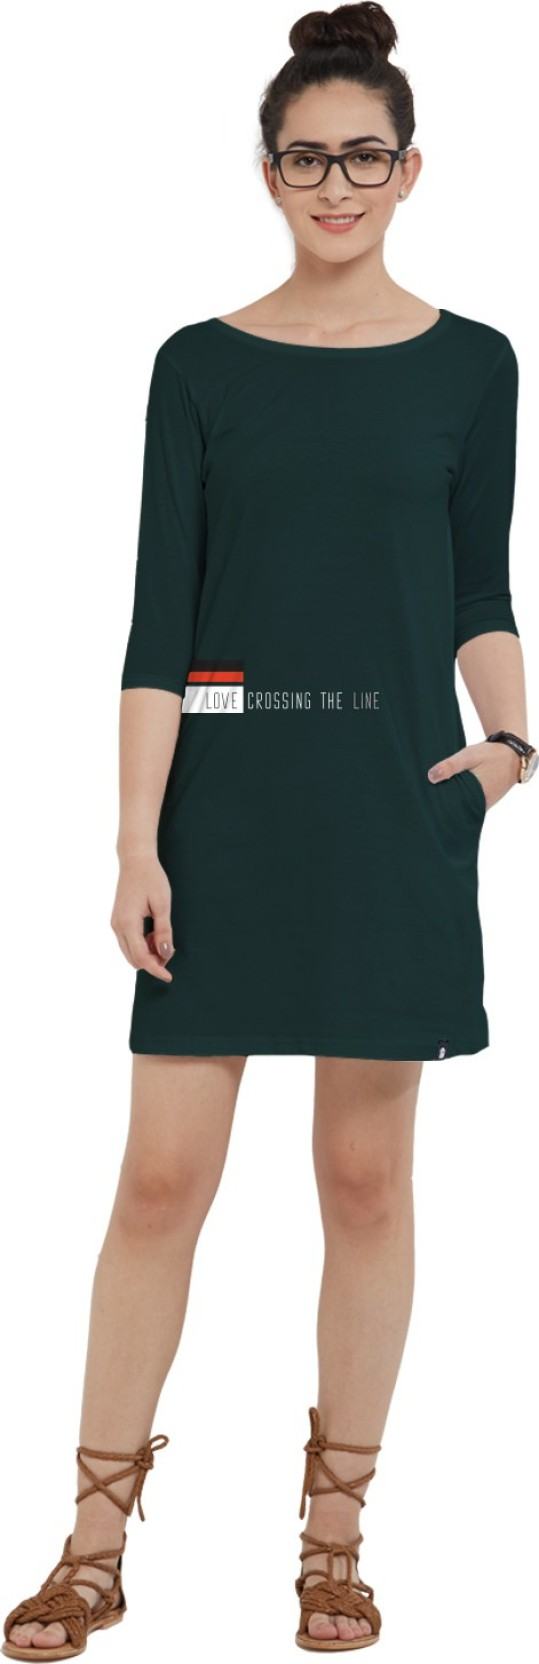 d1a73e0c438 The Souled Store. Women T Shirt Dark Green Dress - Buy The Souled ...